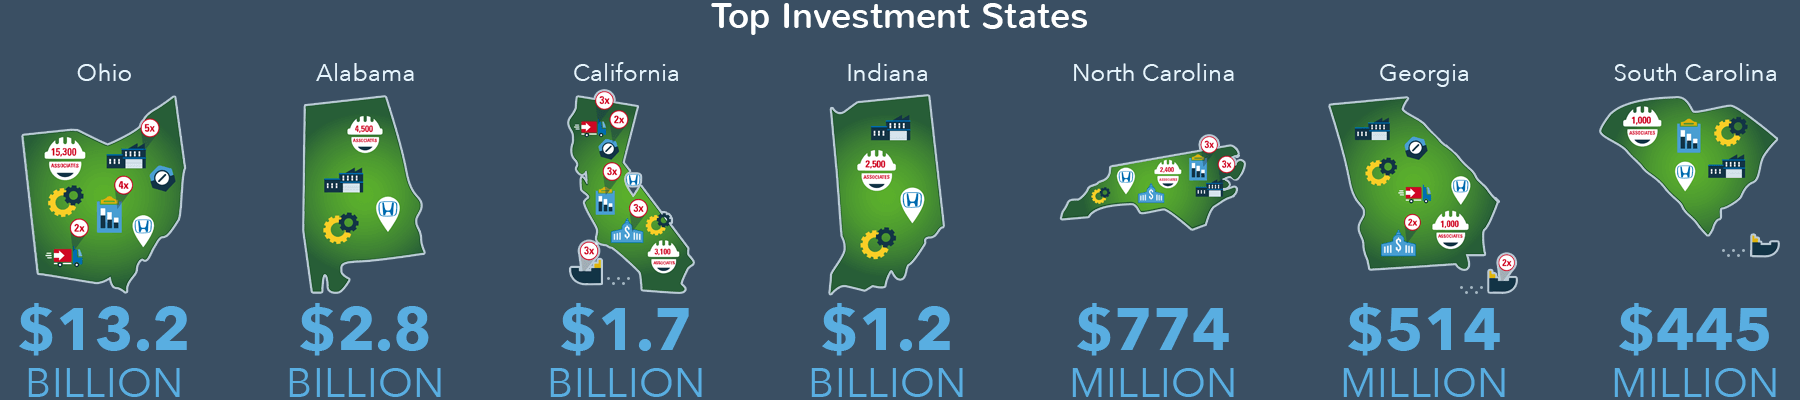 Honda Top Investment States